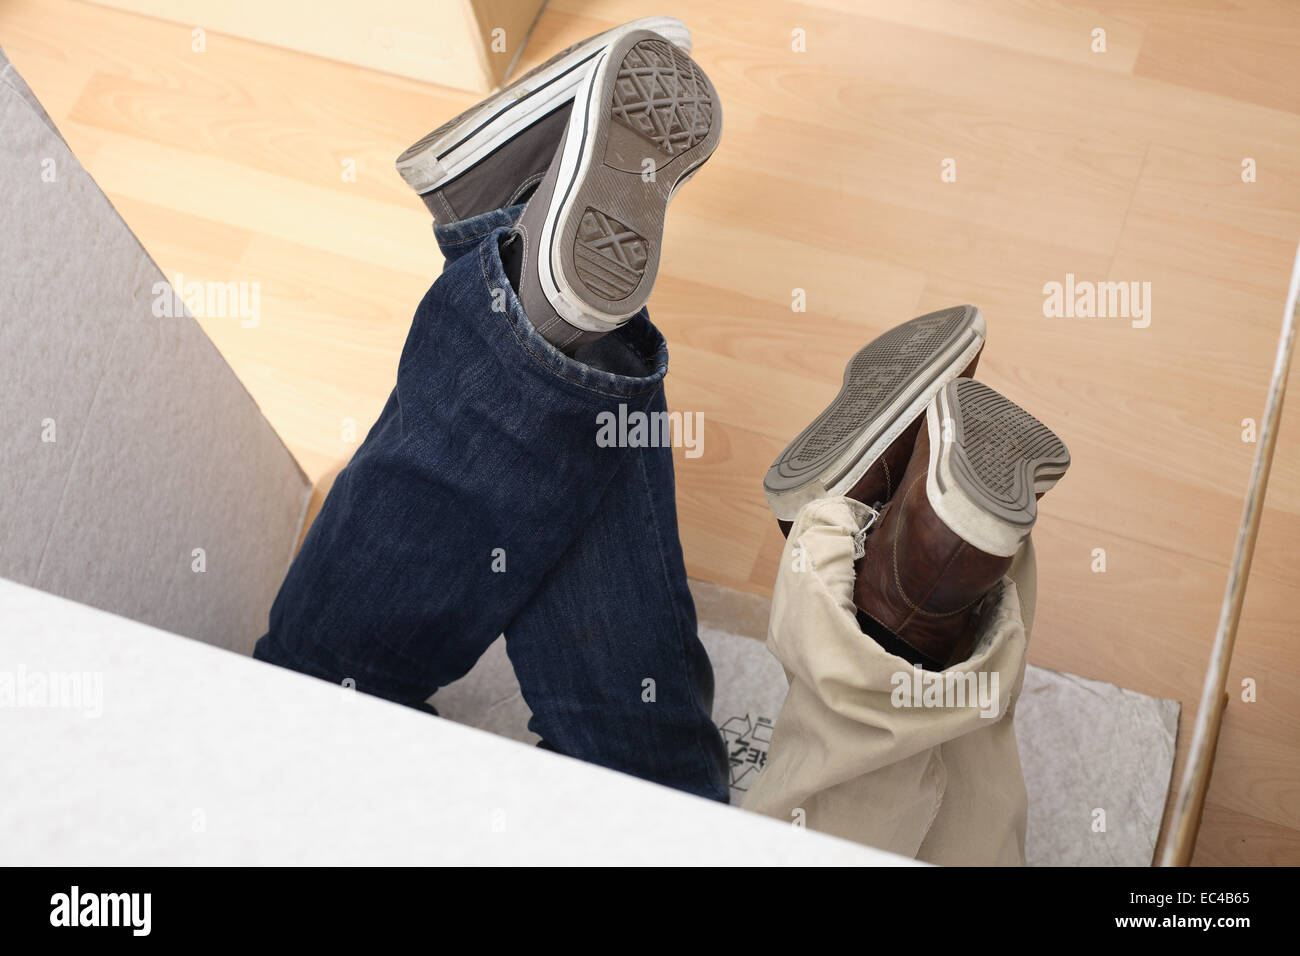 Feet Protruding from a moving box - Stock Image